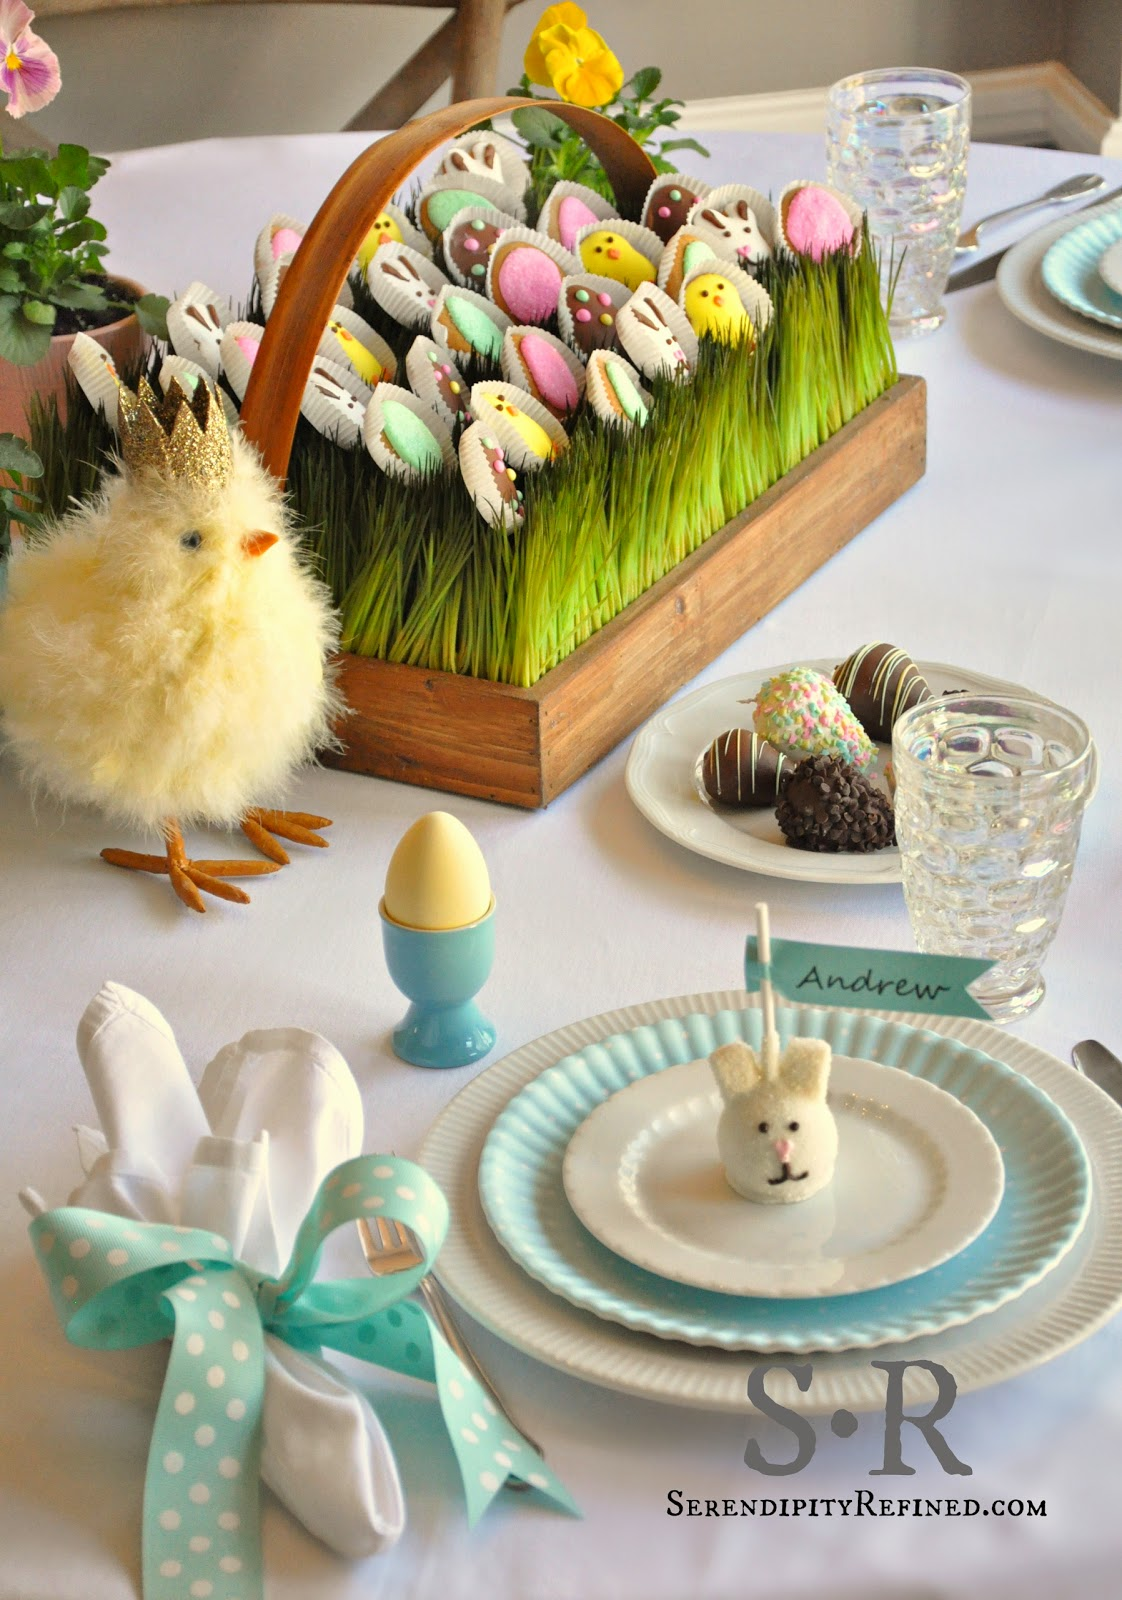 I Cant Believe That Its Easter It Snuck Up On Me This Year So Much Honestly Had No Idea How Was Going To Decorate My Table Until